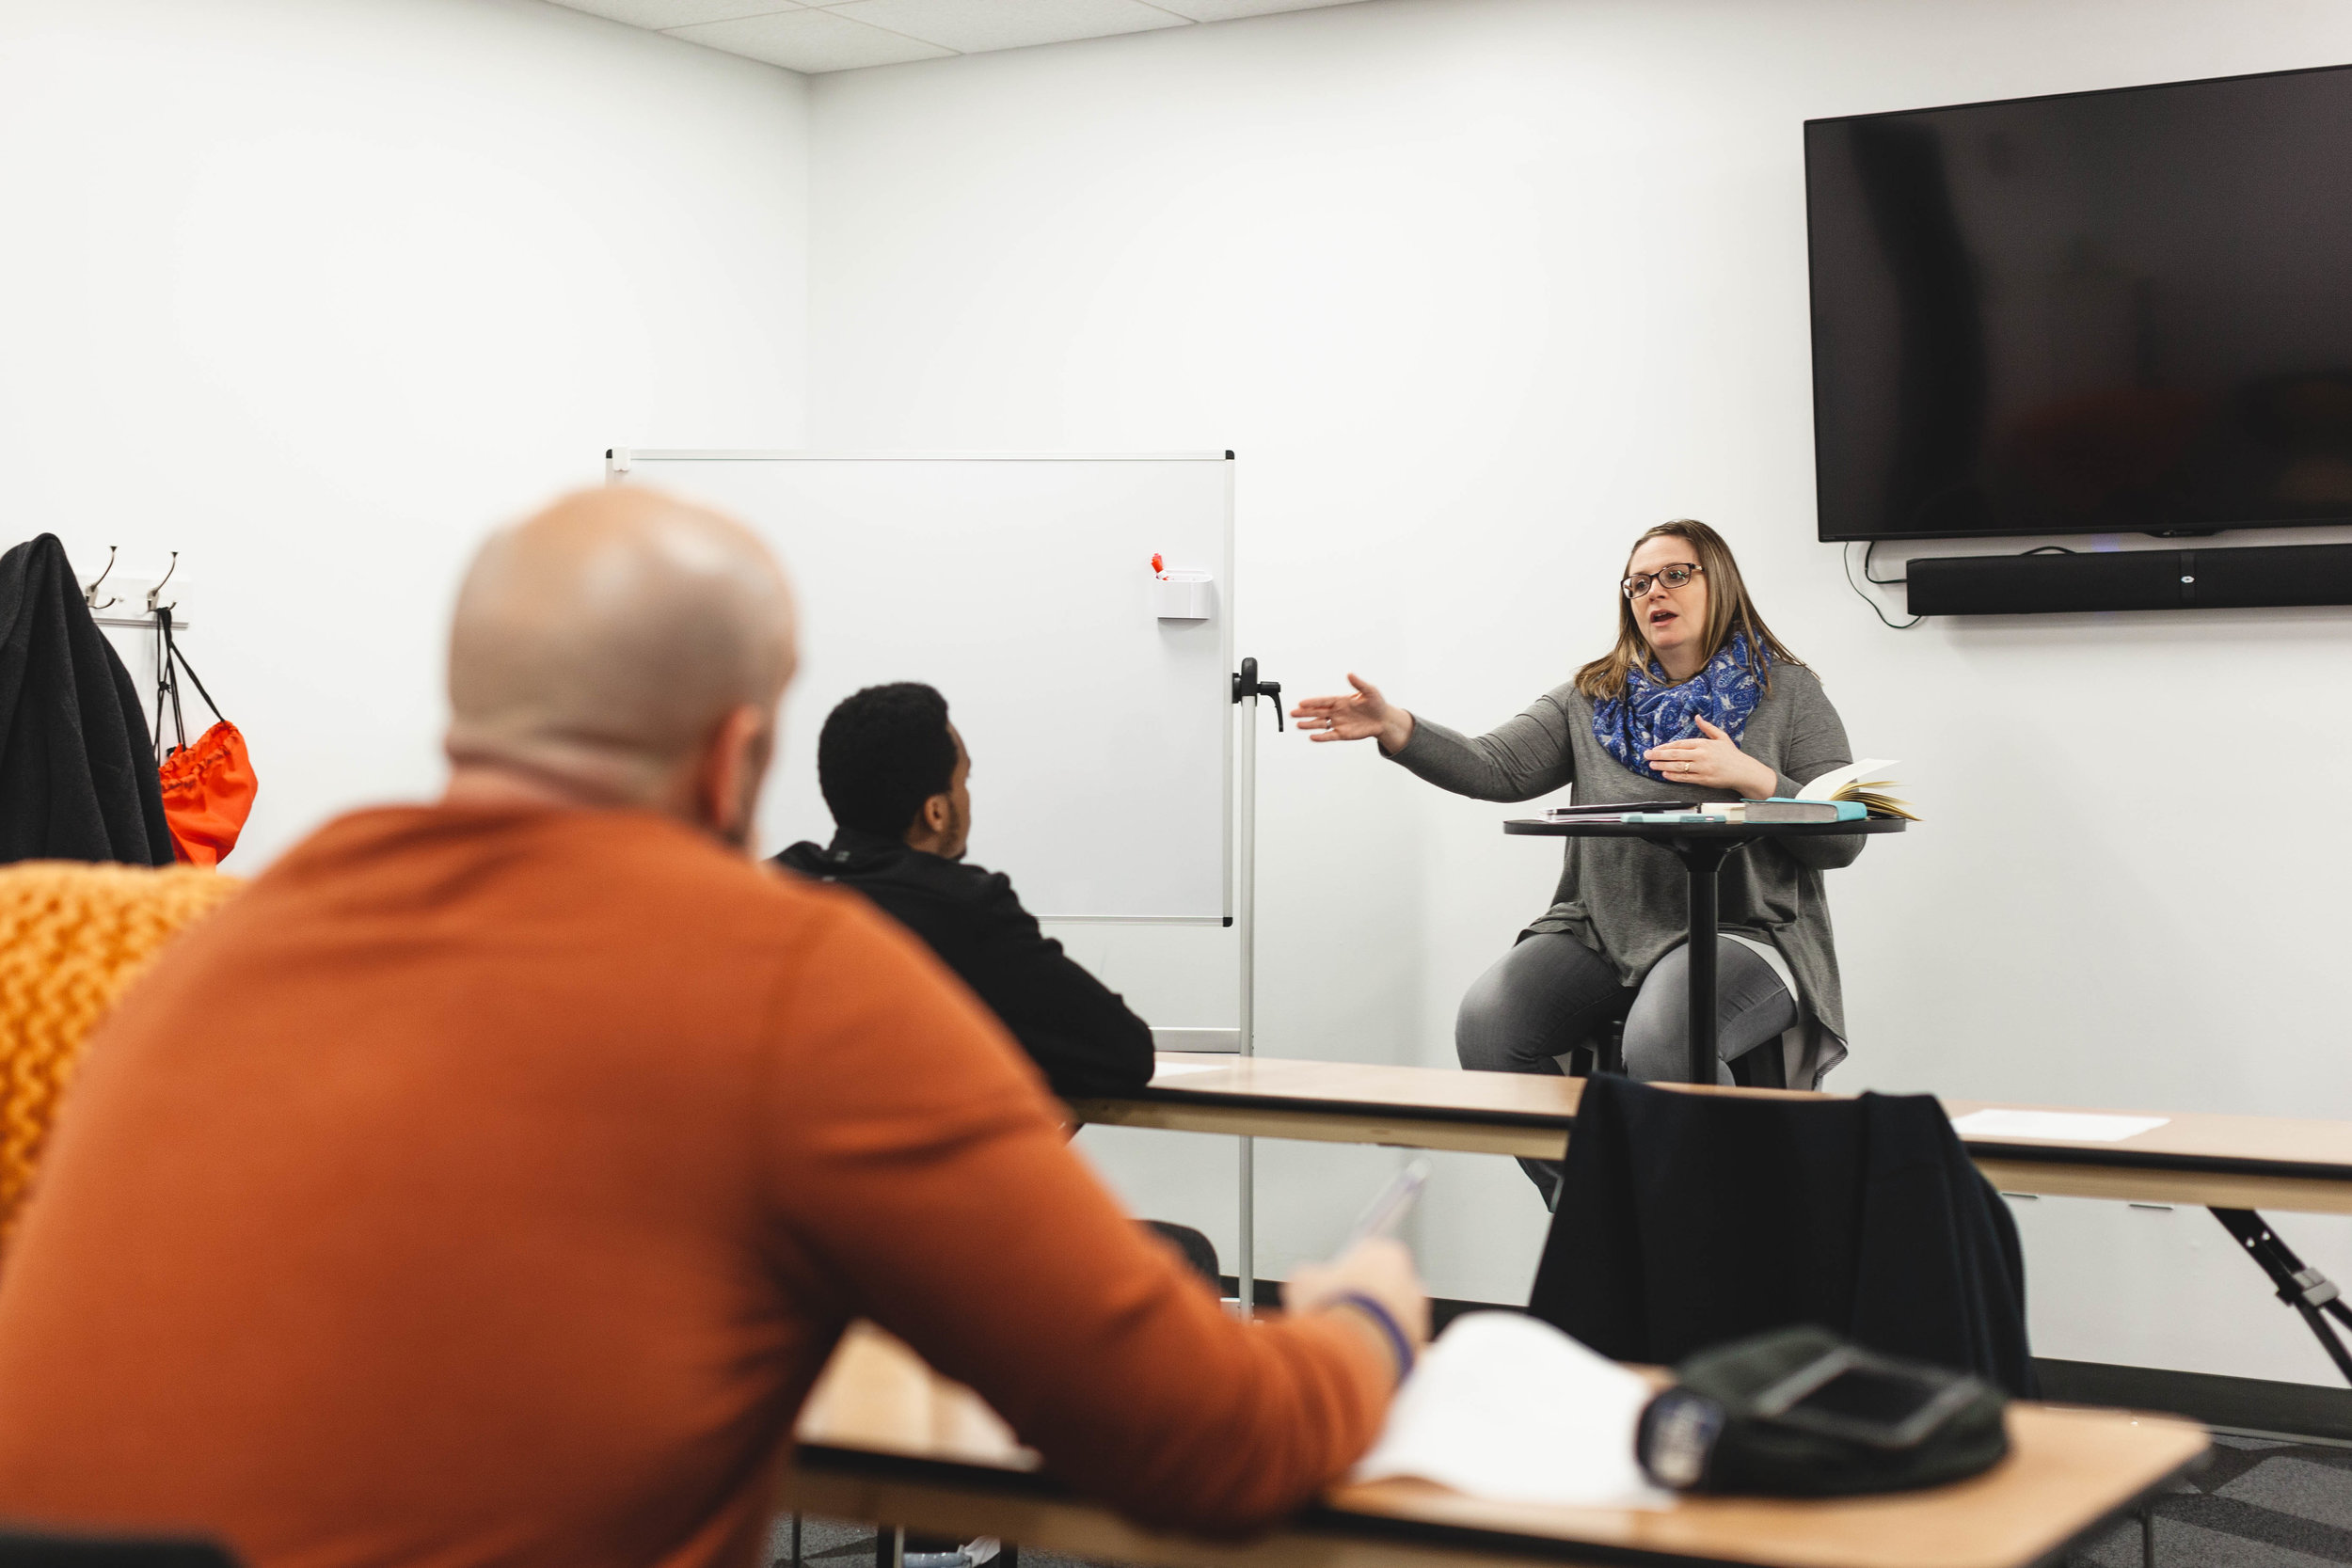 The Classroom Experience - World-class leadership training. Biblical education. Facilitators who care.Hear how our program equips you with the Biblical Leadership knowledge that empowers you in ministry, the marketplace, and beyond.